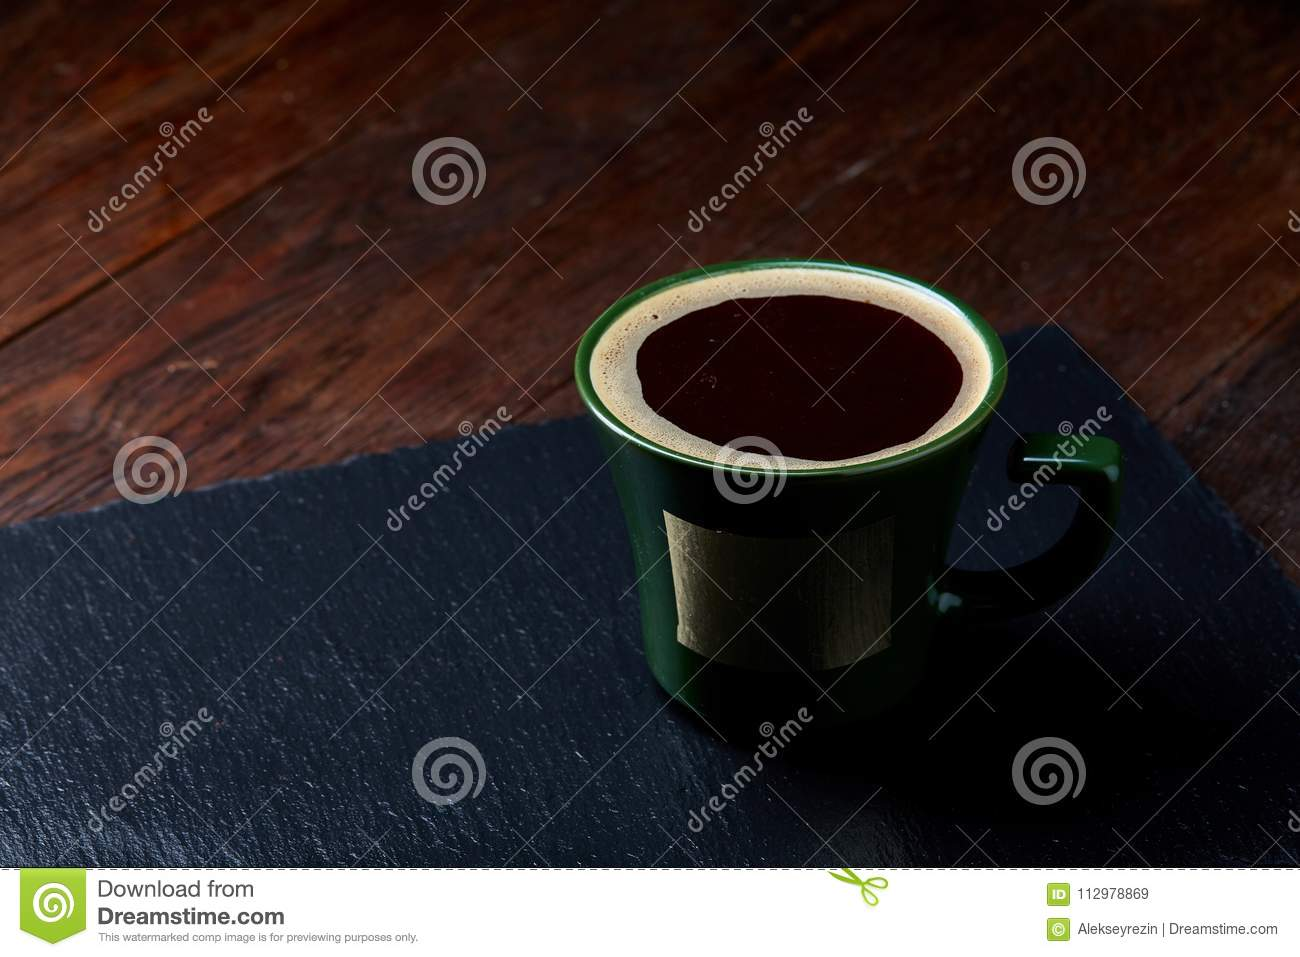 Green porcelain coffee cup on stone board over wooden background, selective focus, close-up